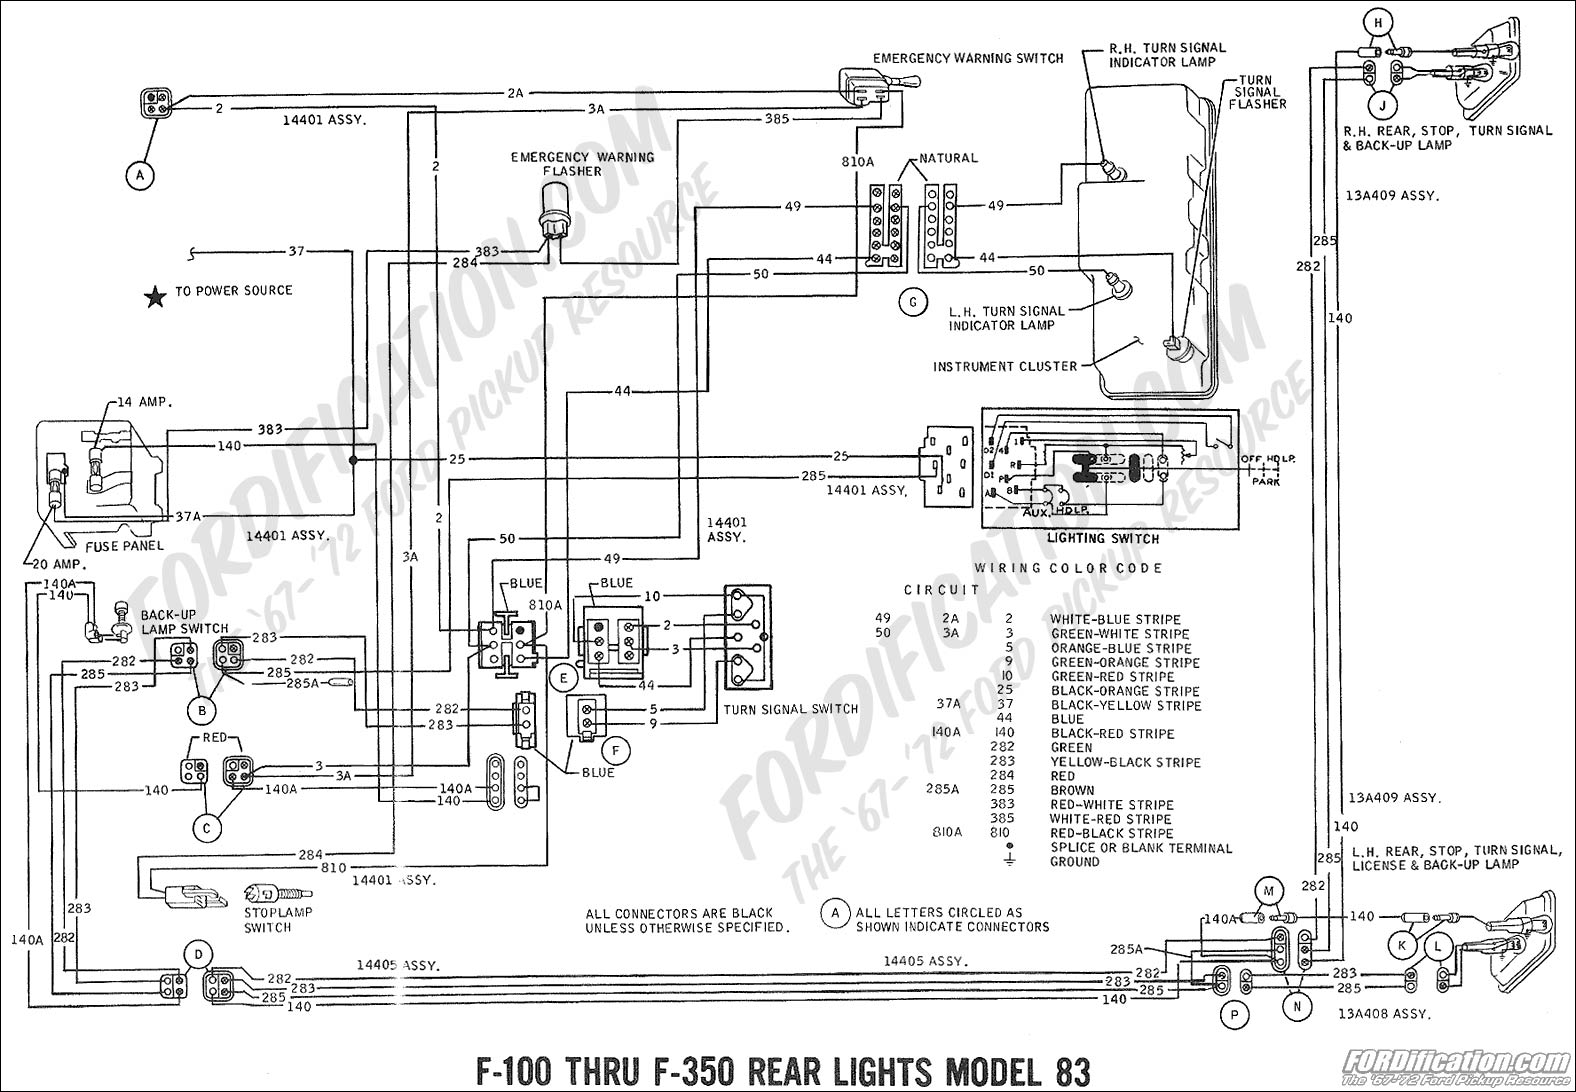 Wiring Diagram 81 Ford Maverick House Symbols 302 Engine 1953 F100 Wire Harness Schematic Cars Rh Banyan Palace Com 1979 Distributor 2008 64 Turbo